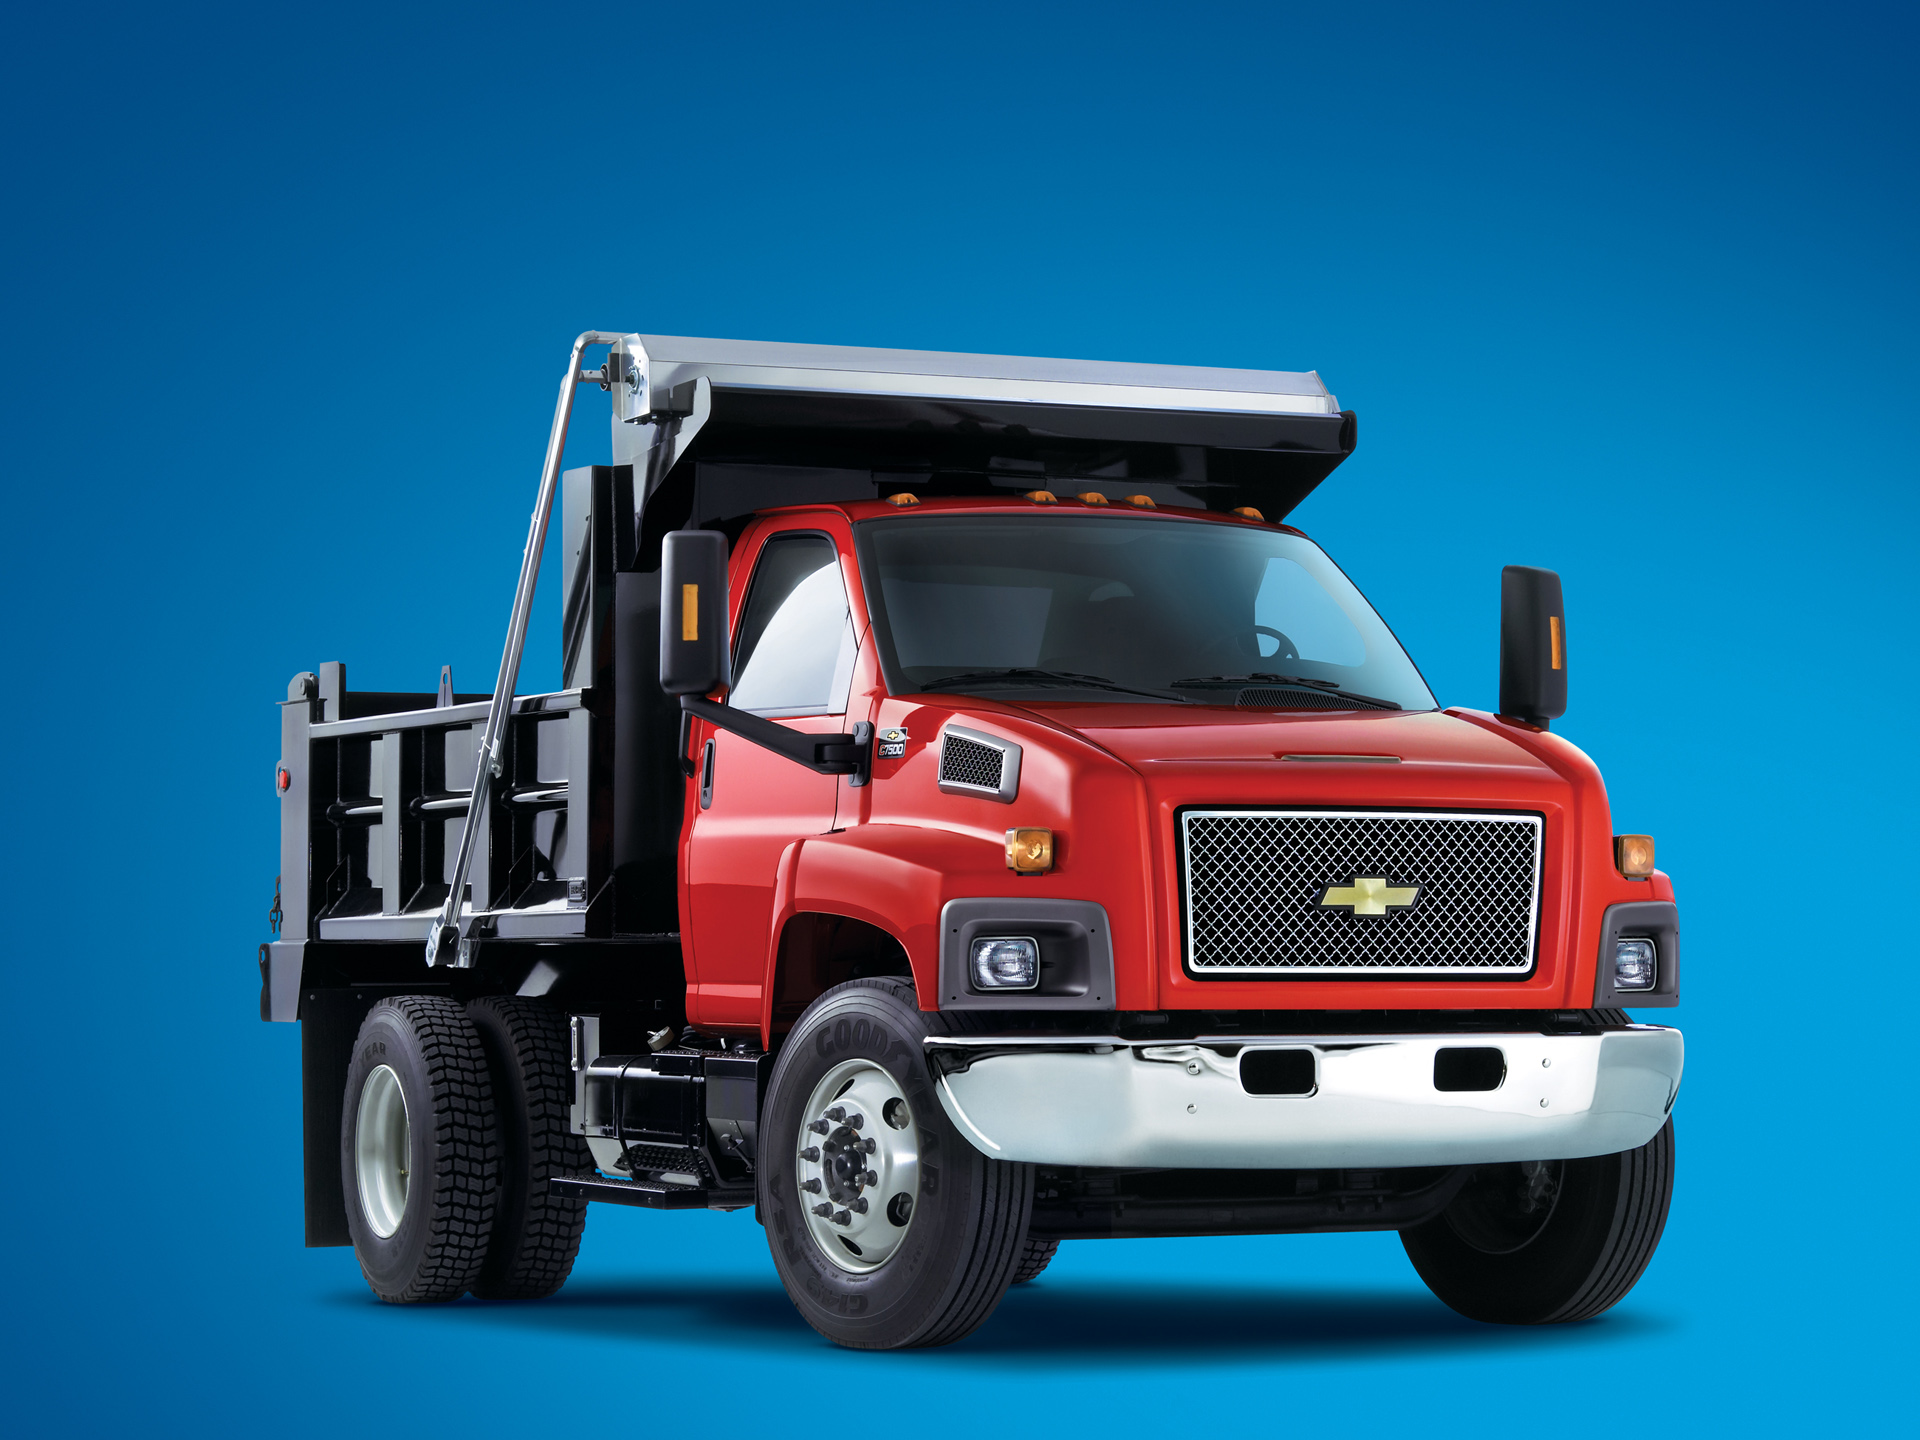 Chevrolet C7500 Photos Photogallery With 5 Pics